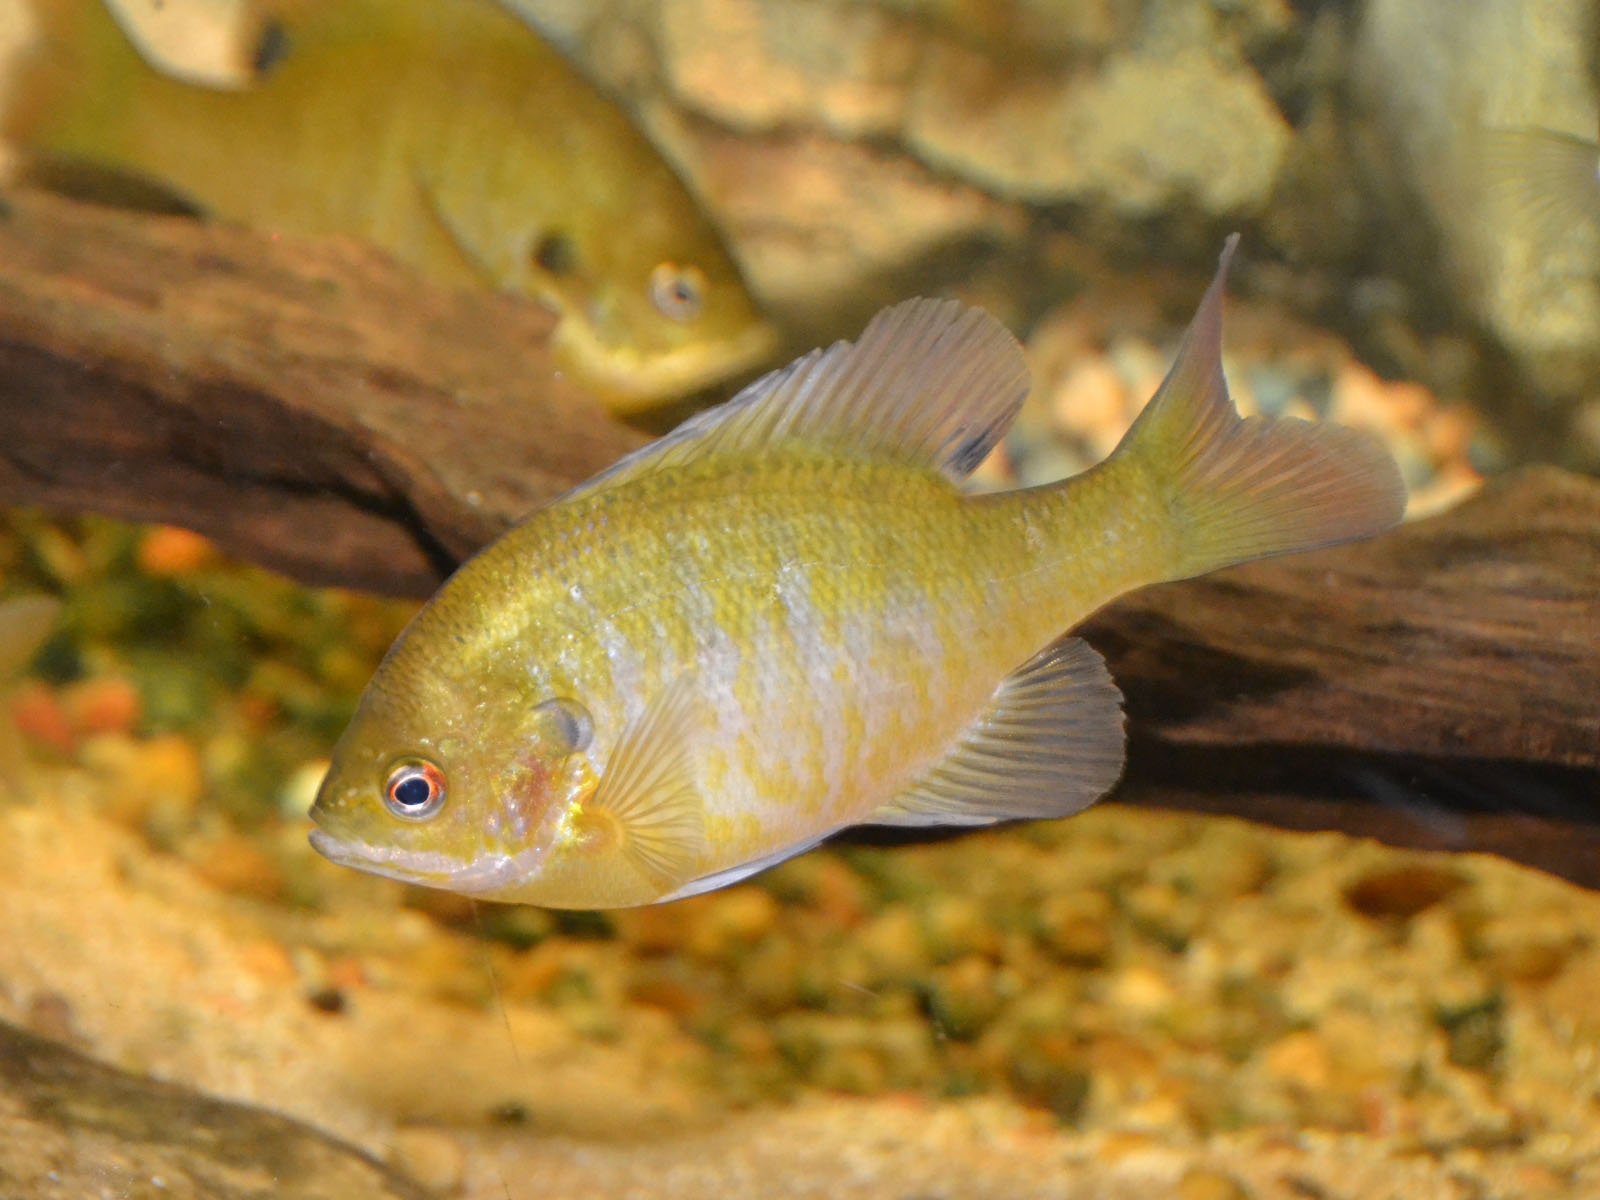 The online zoo bluegill sunfish for Bluegill fish tank